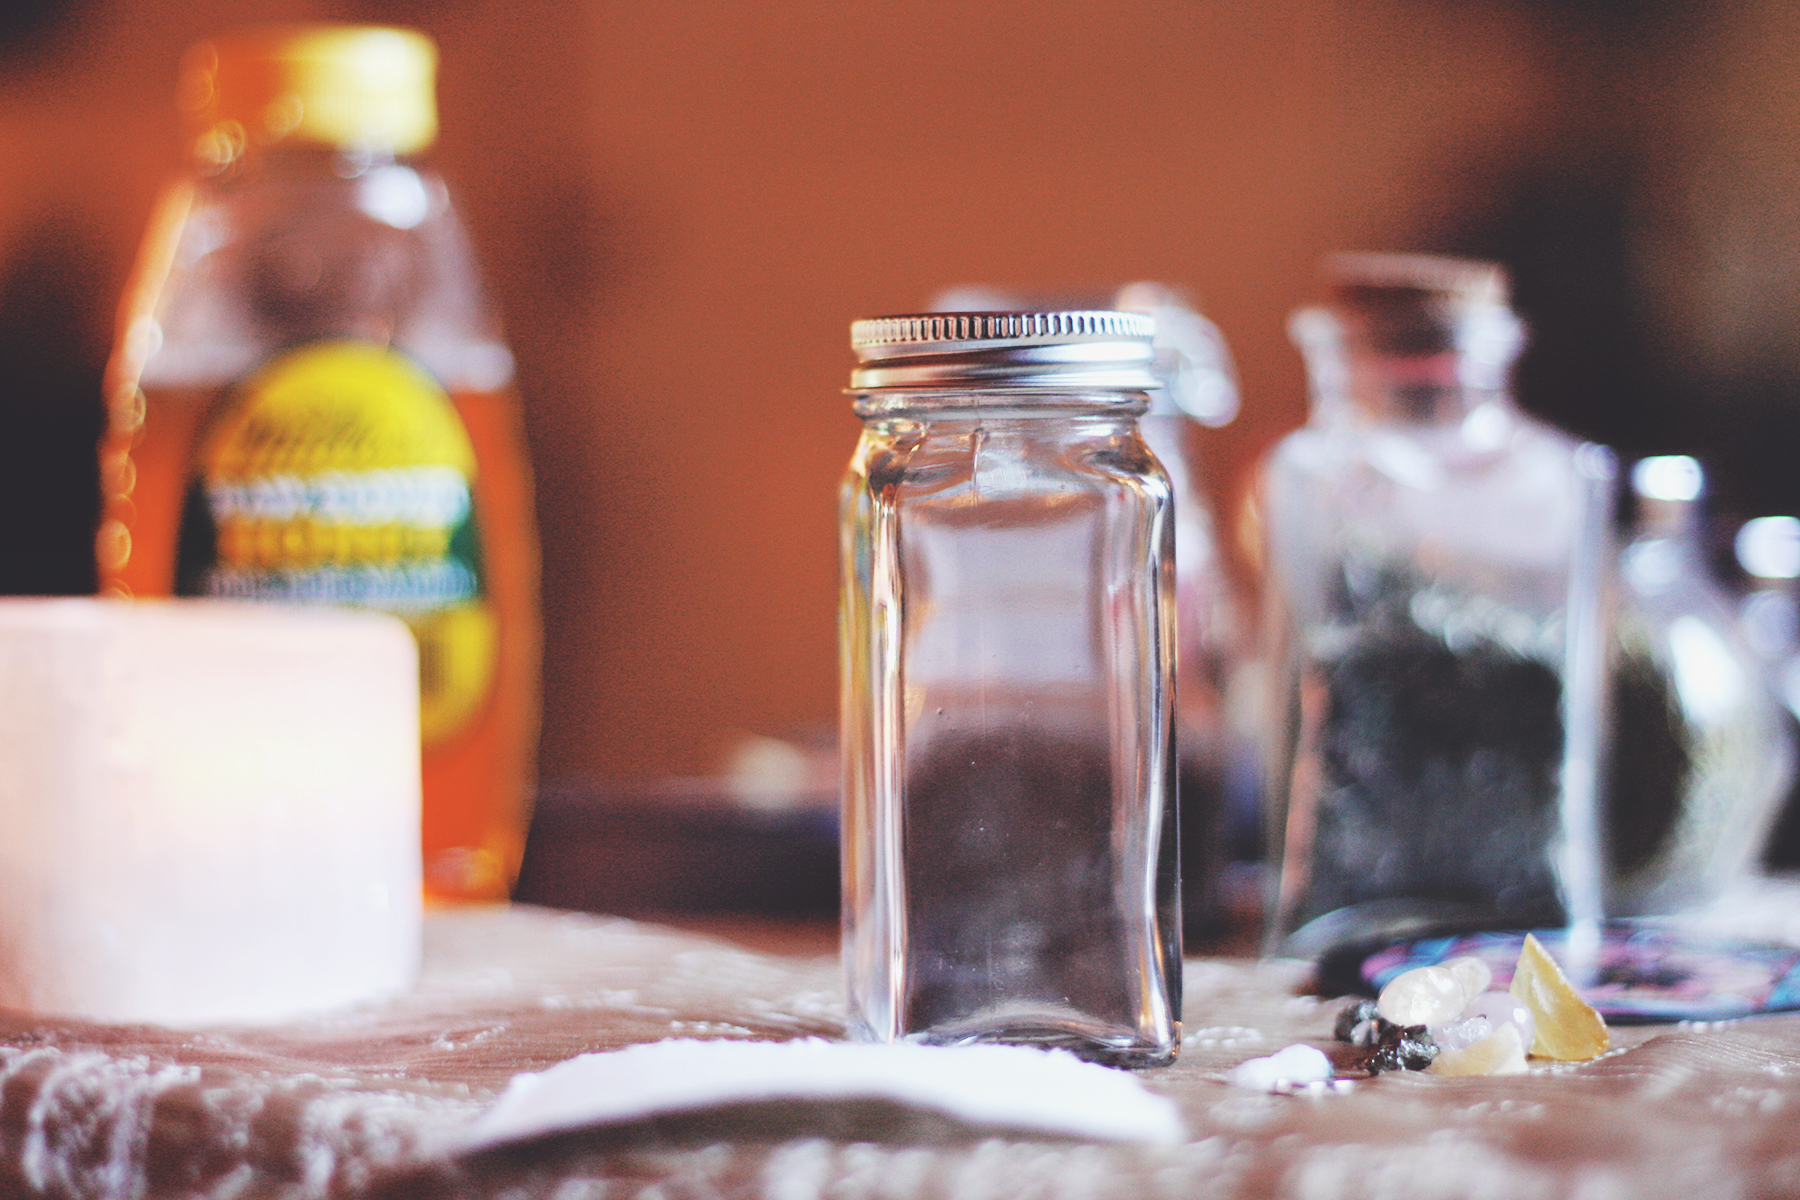 Gathering supplies for the Honey Jar | Spirit de la Lune